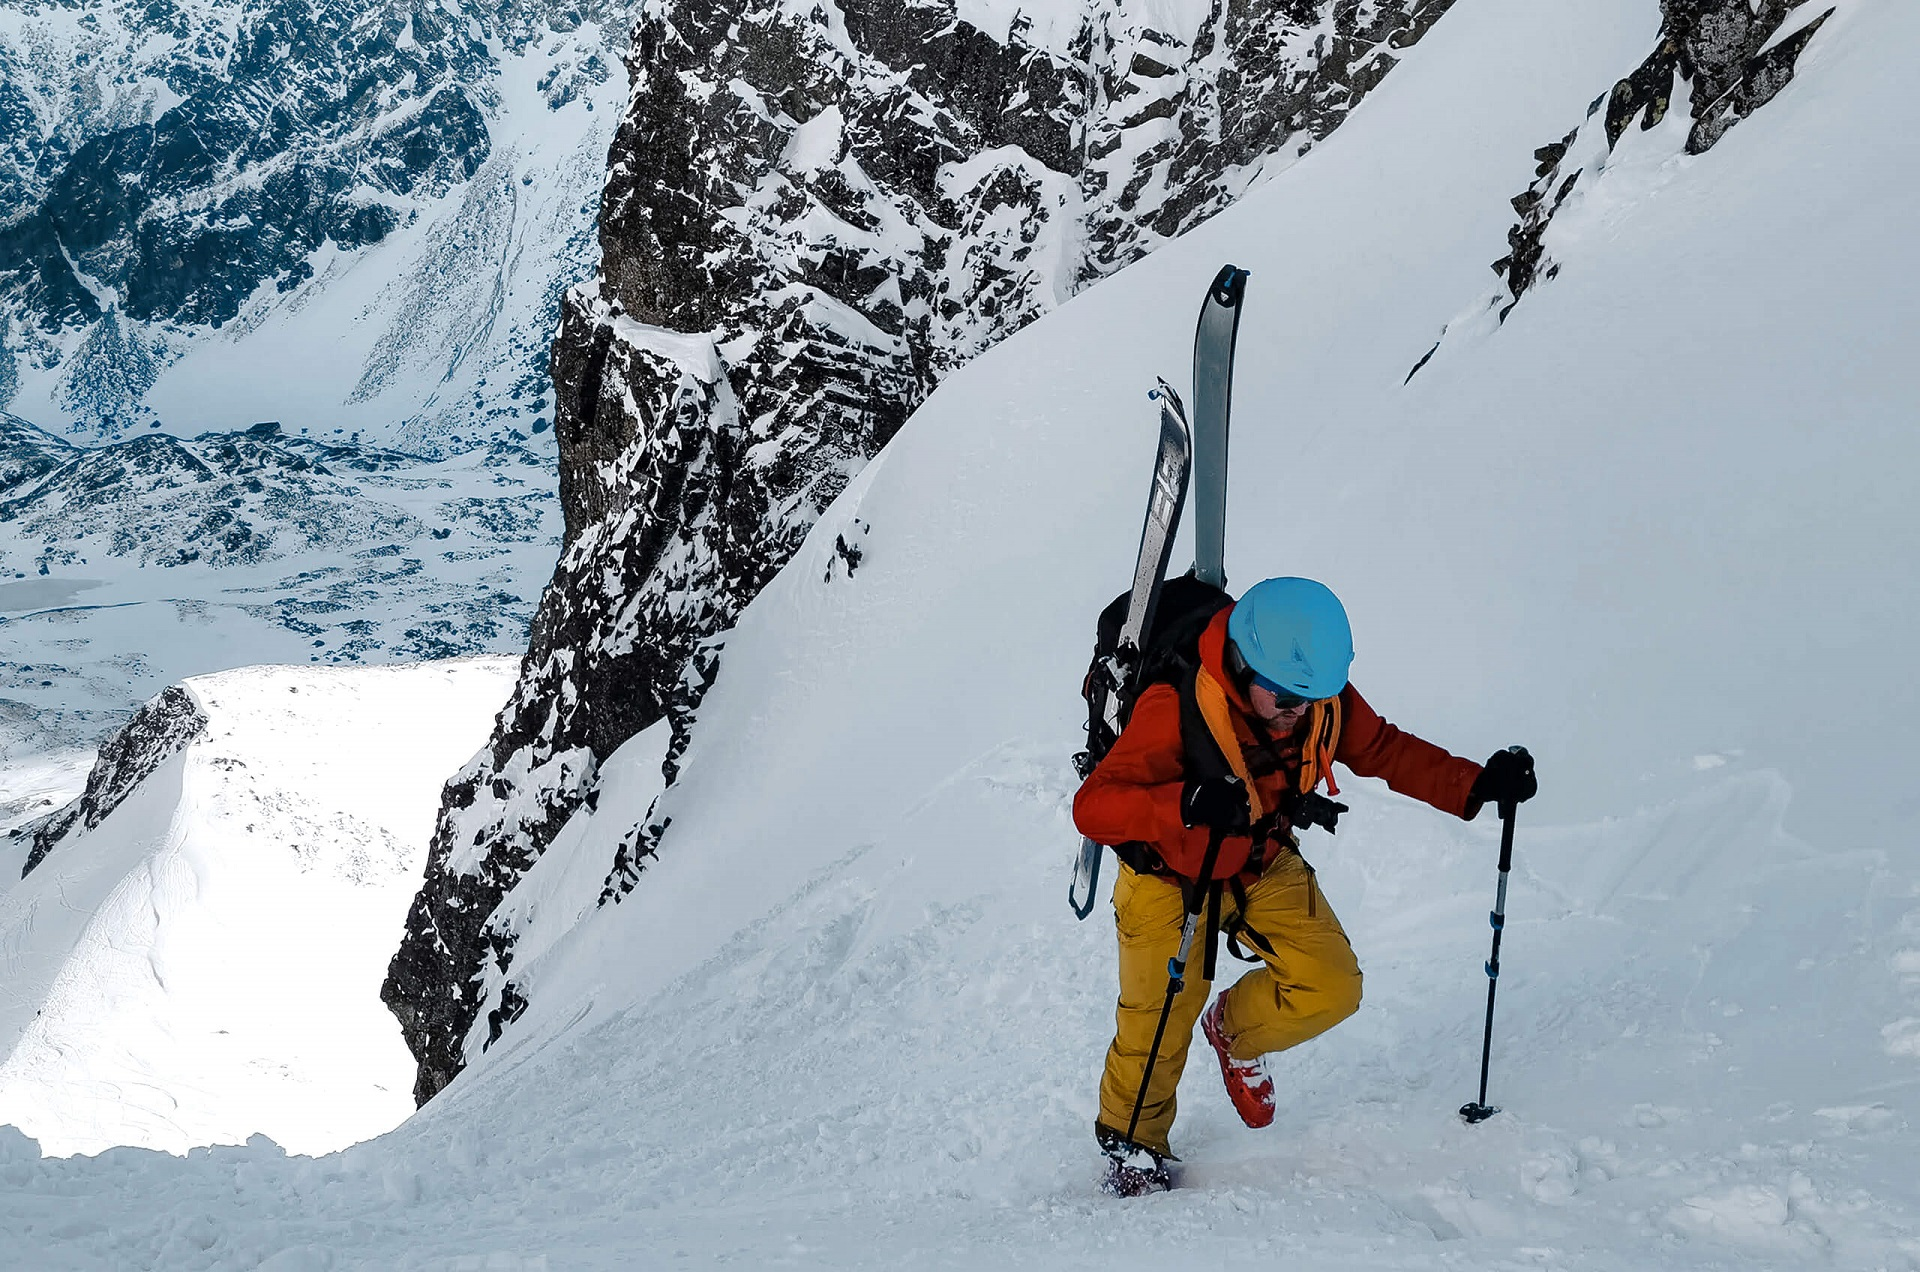 Man with skis climbing in the mountains, in winter, with the AEROSIZE avalanche vest